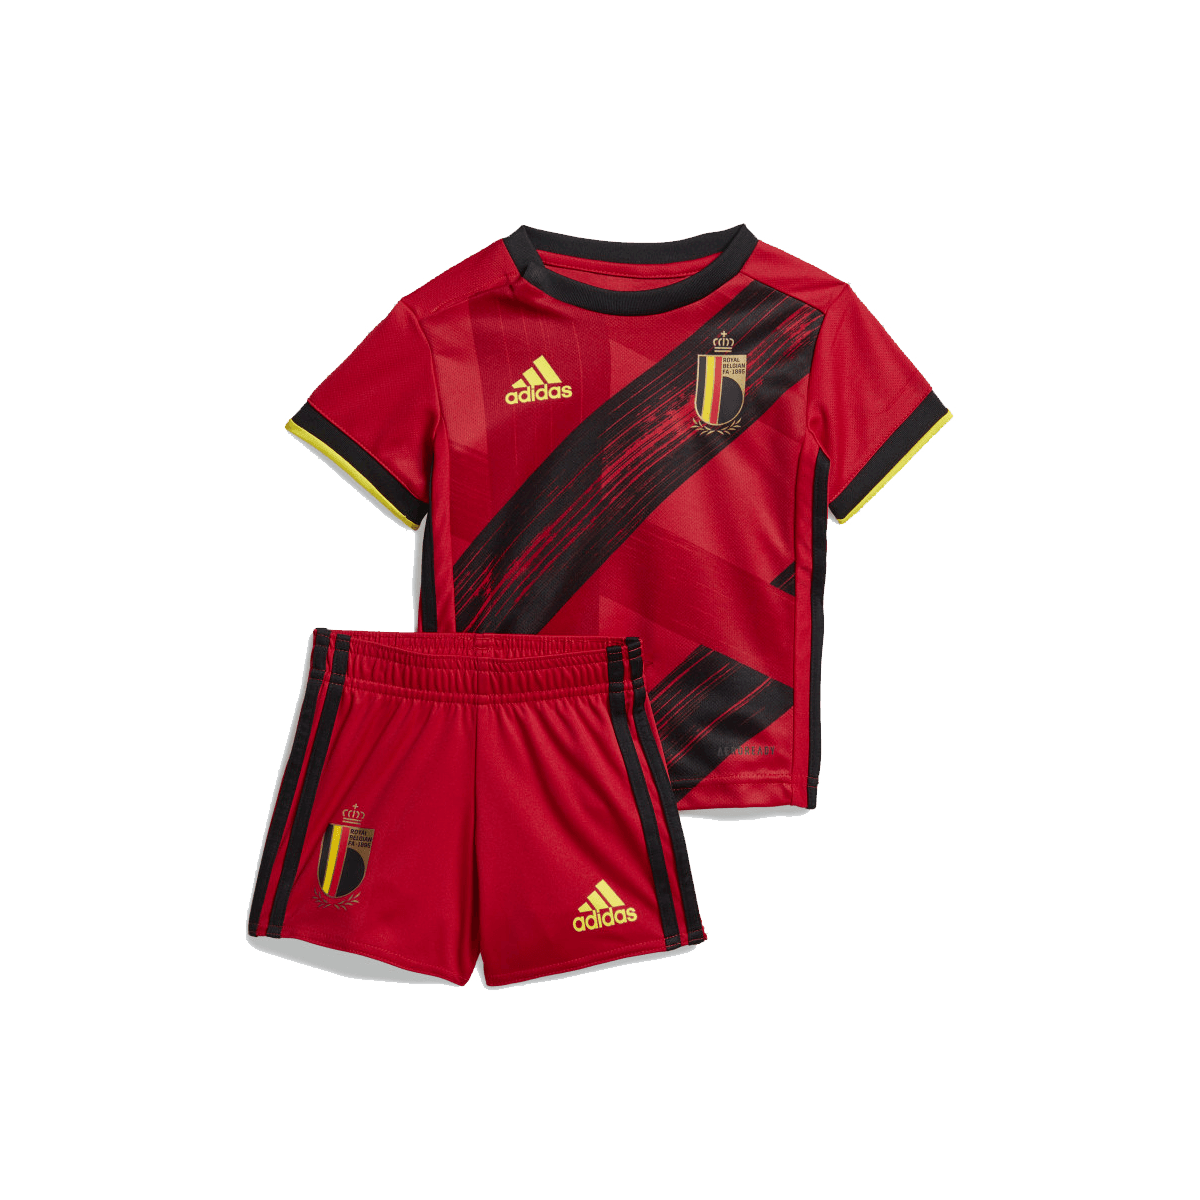 adidas Belgien Kinder Trainingsshirt rot Fussball Shop